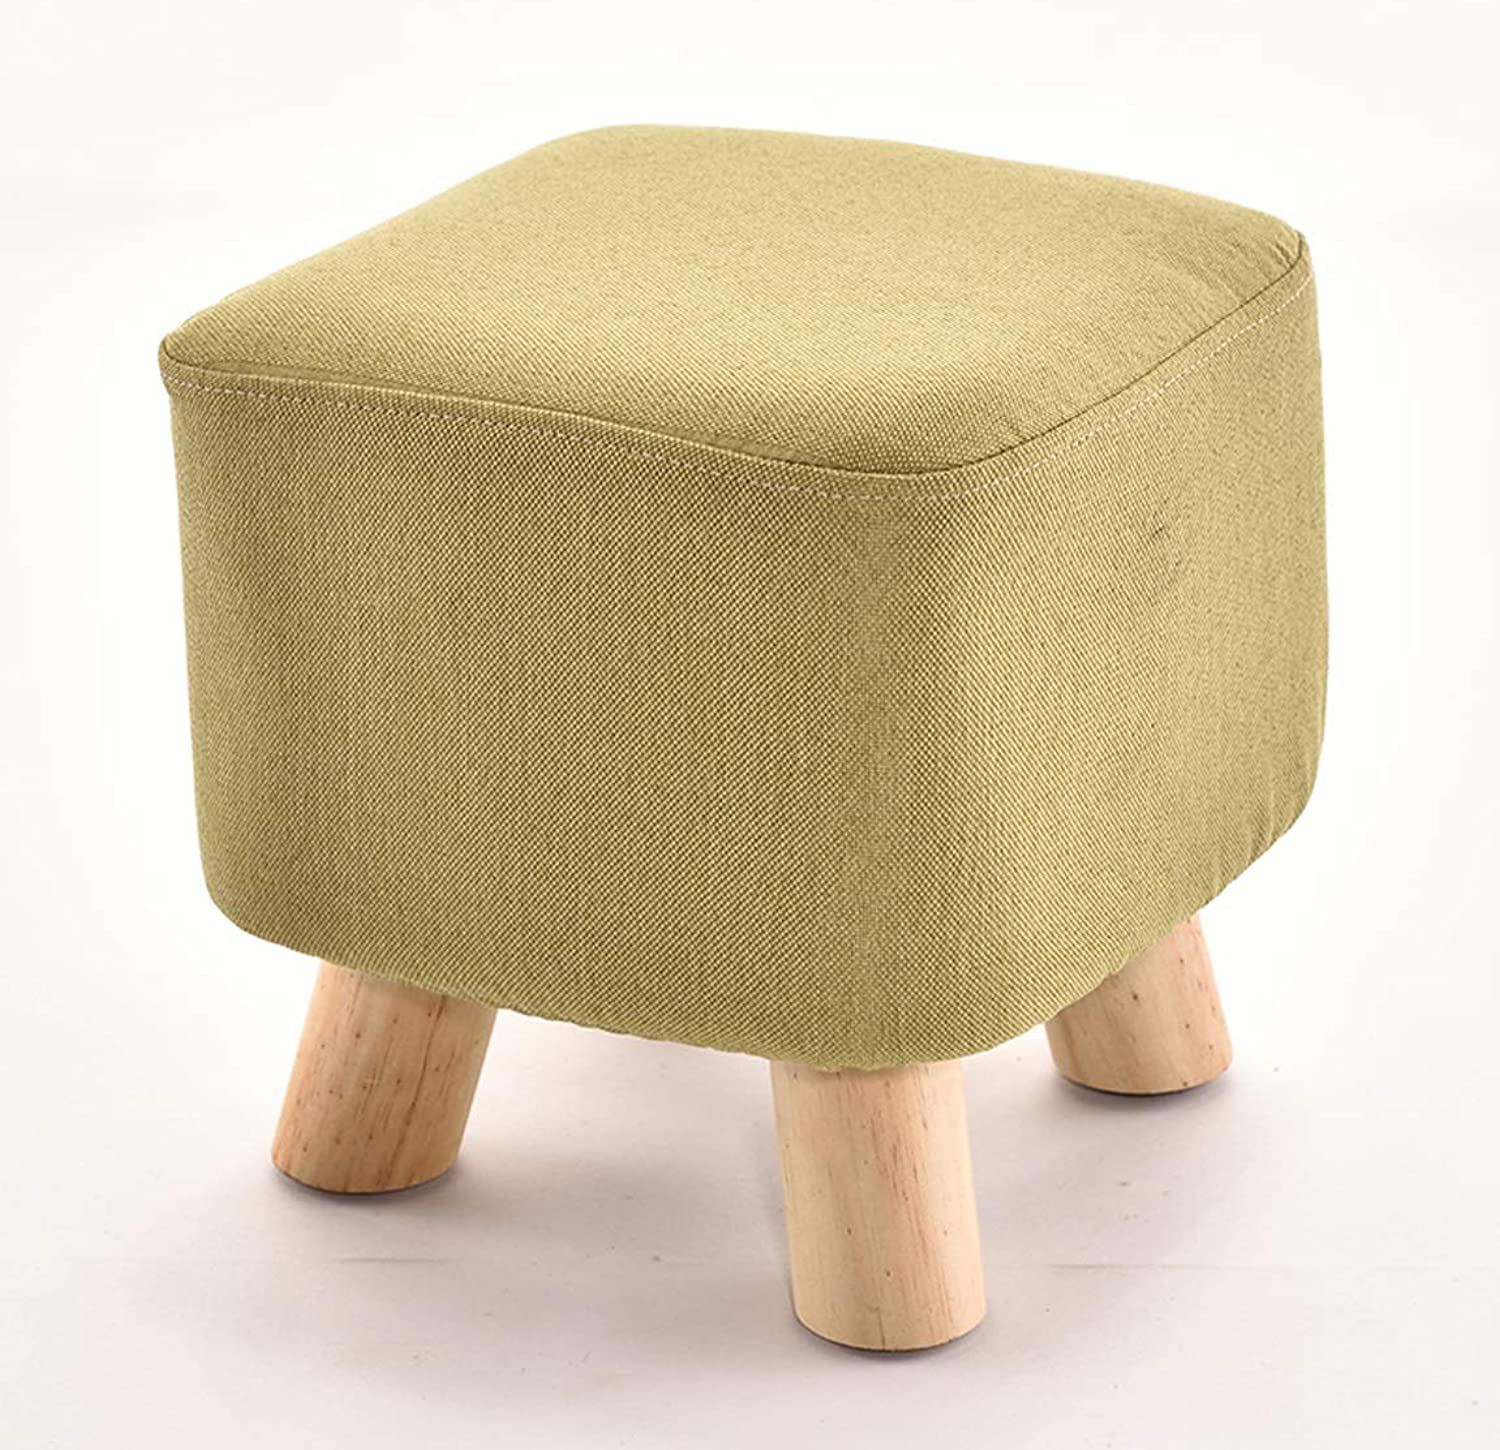 LRW Small Stool Solid Tea Table Low Stool Fashion Creative Adult shoes shoes Stool Sofa Stool Bench Green